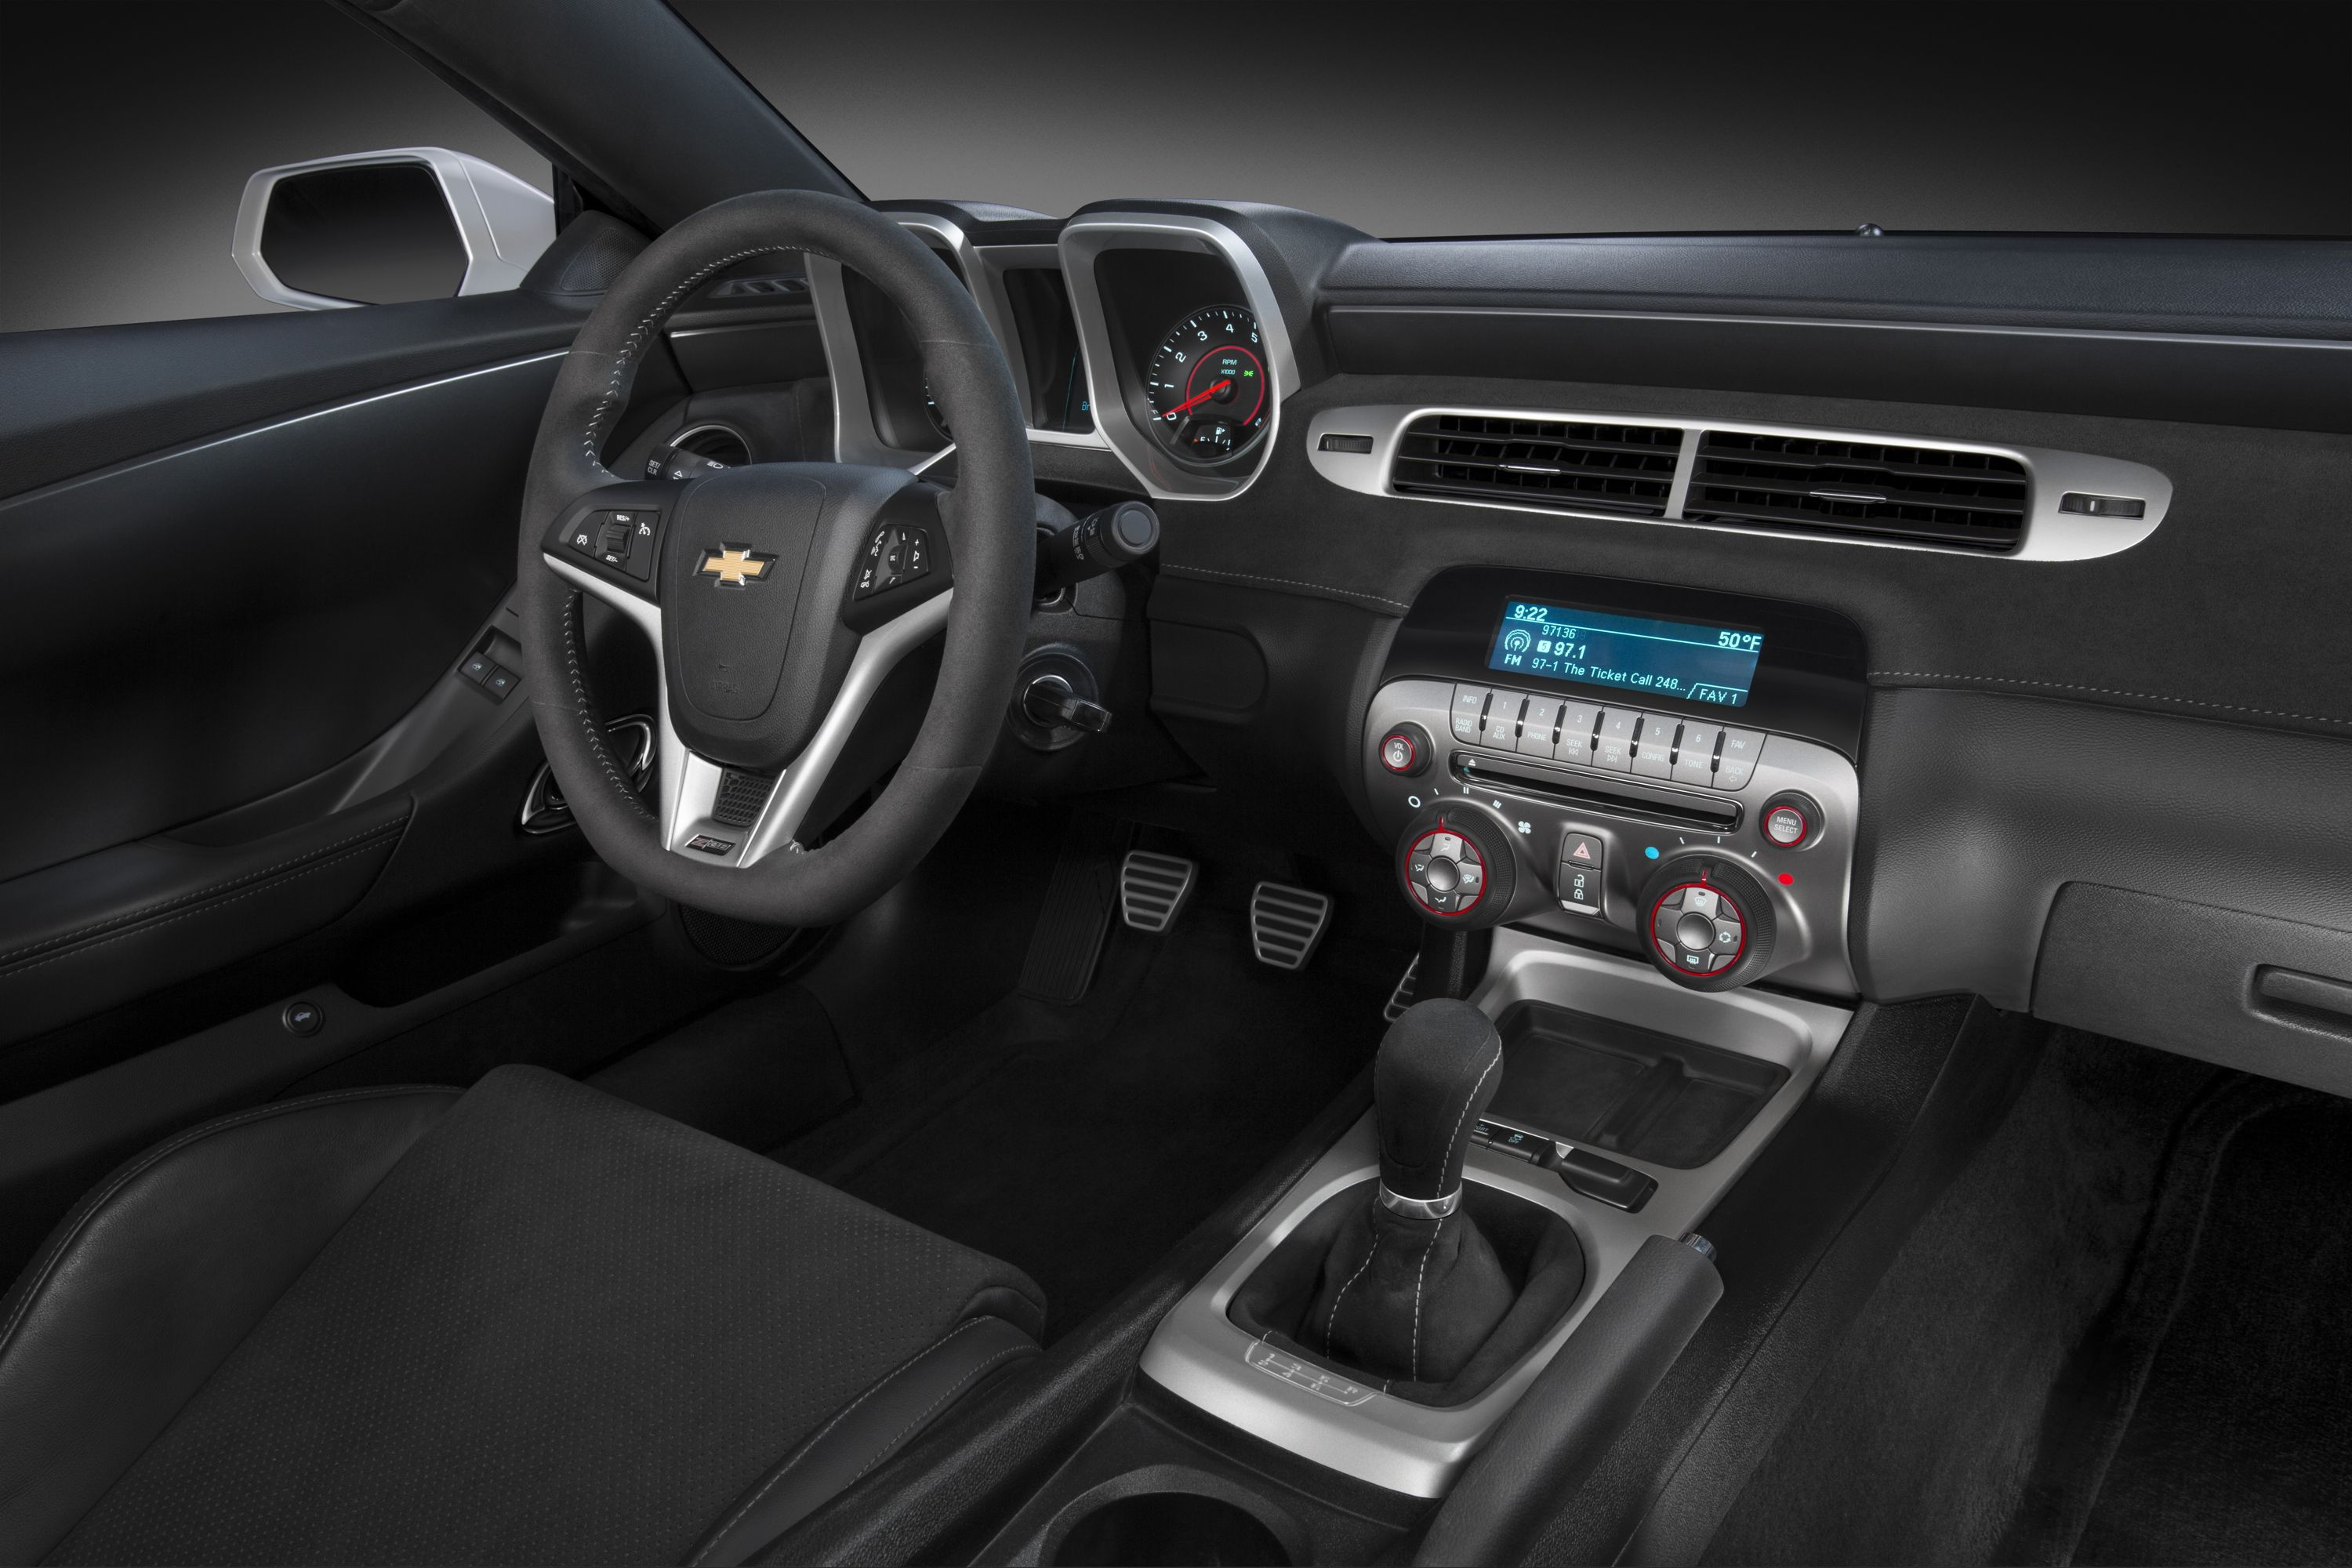 2015 Chevrolet Camaro Z28 Interior Front Seat From Passenger Side View Ideas